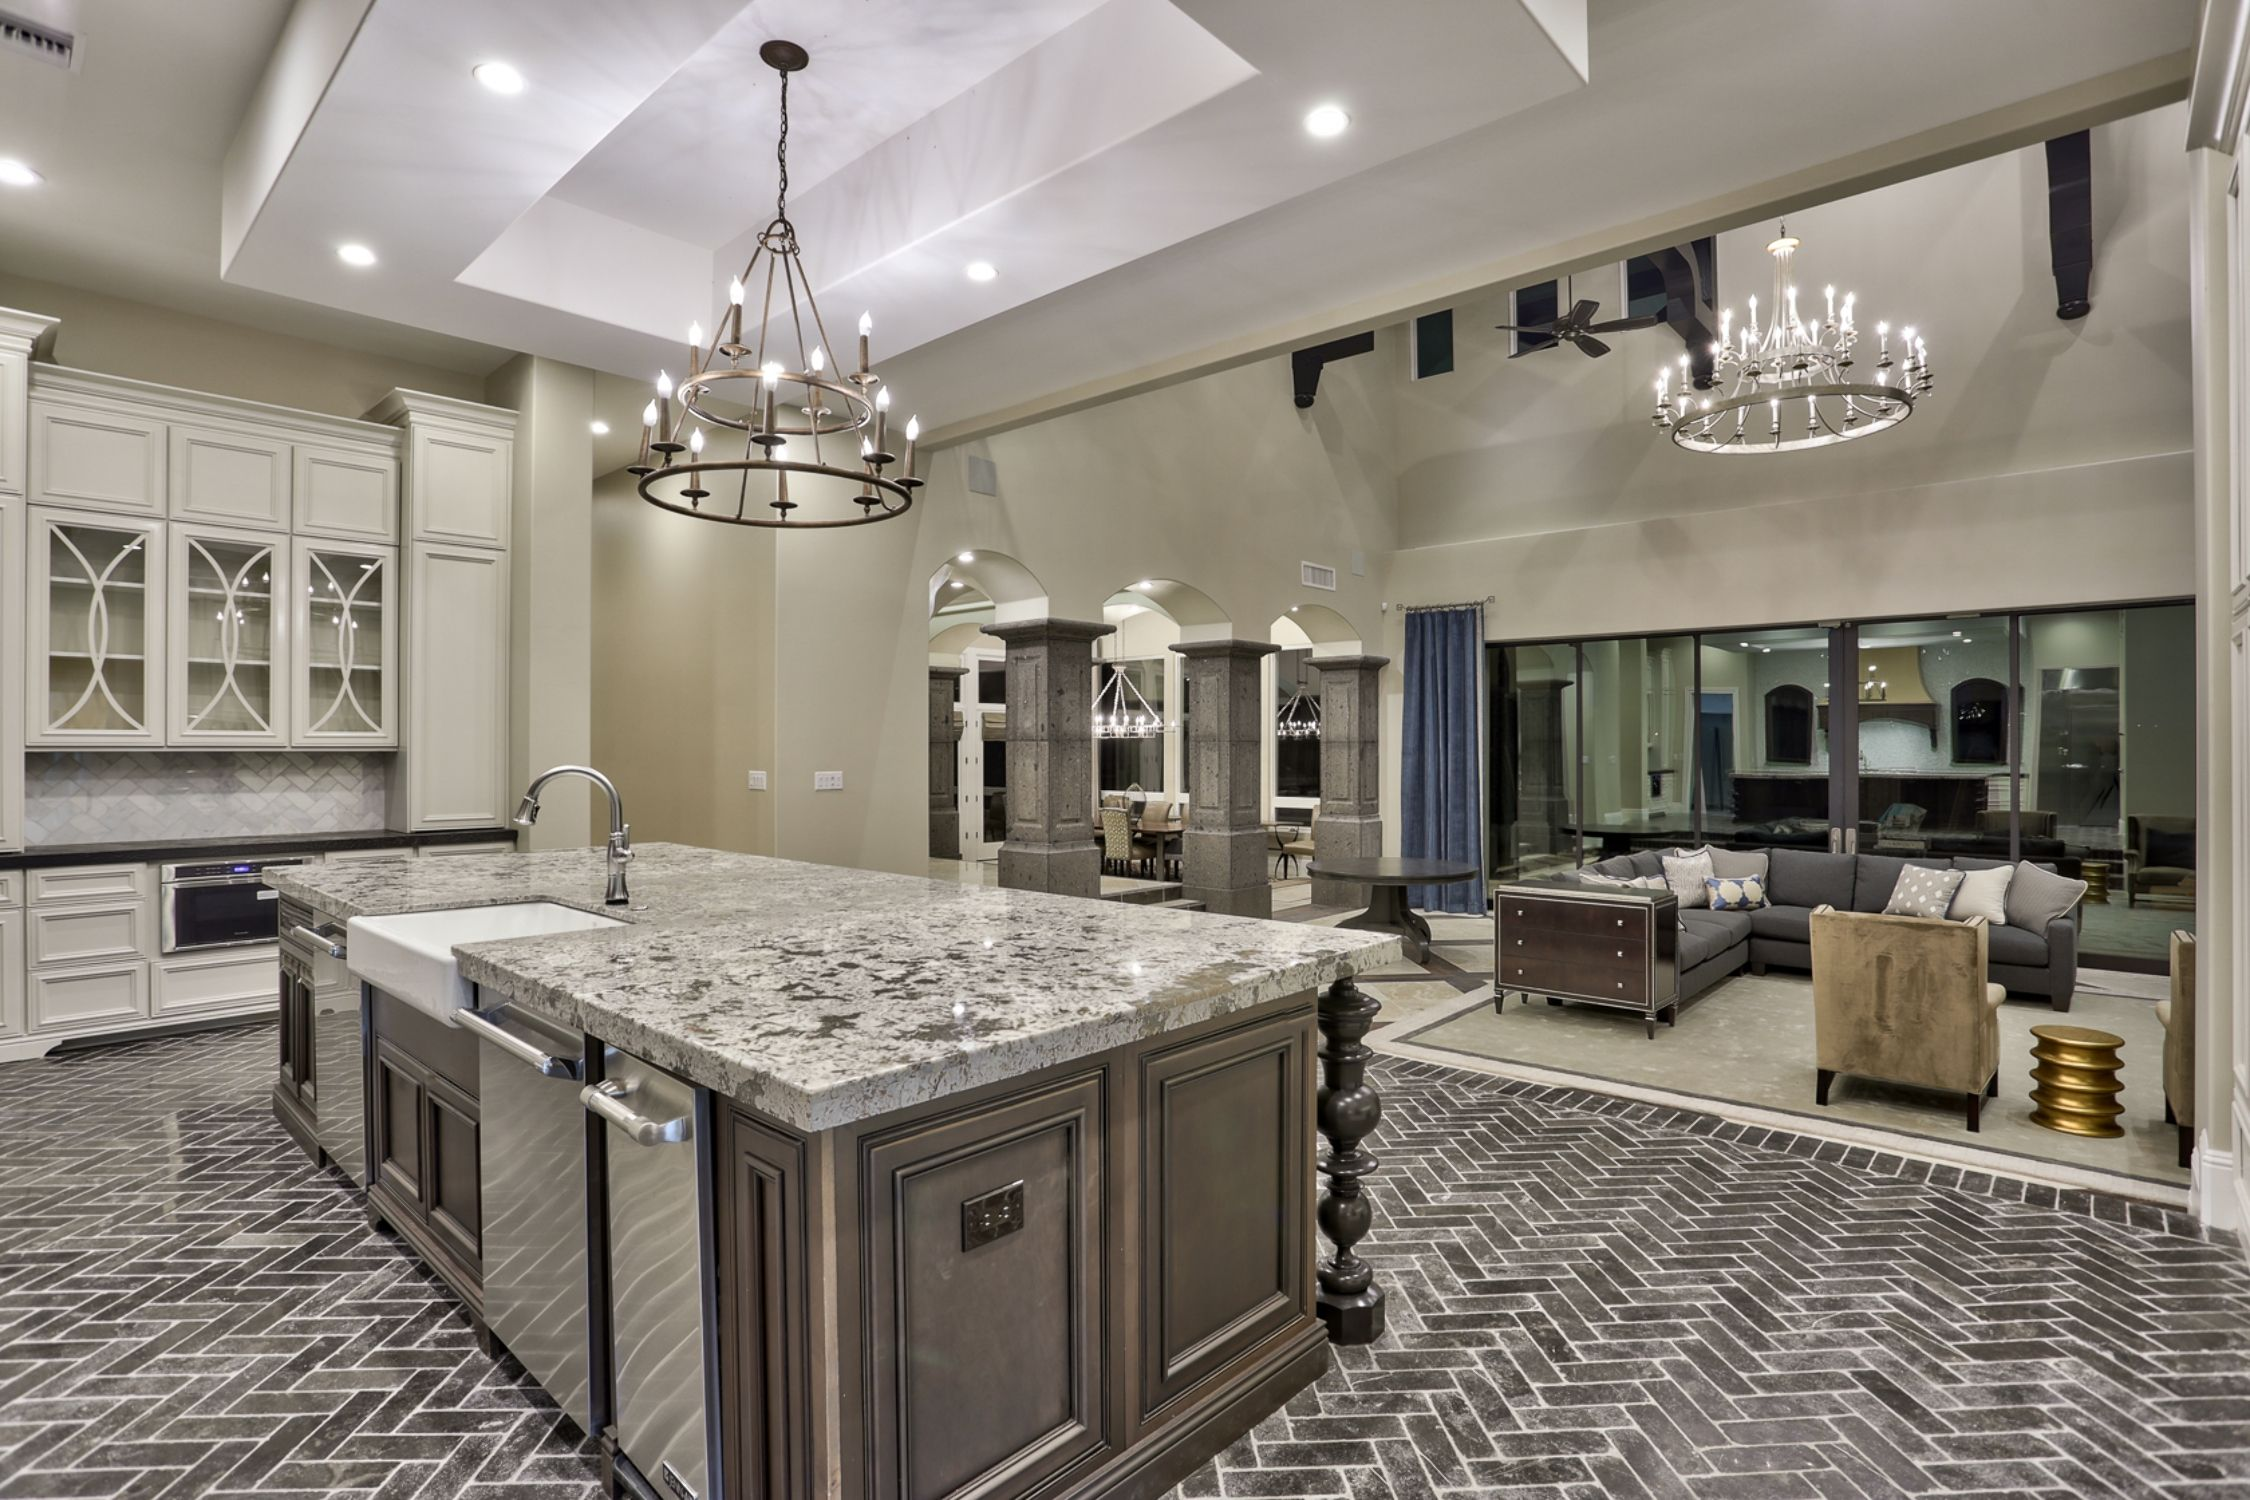 Transitional Home Design Gourmet Kitchen Steps Down Into The Great Room Architectural Design